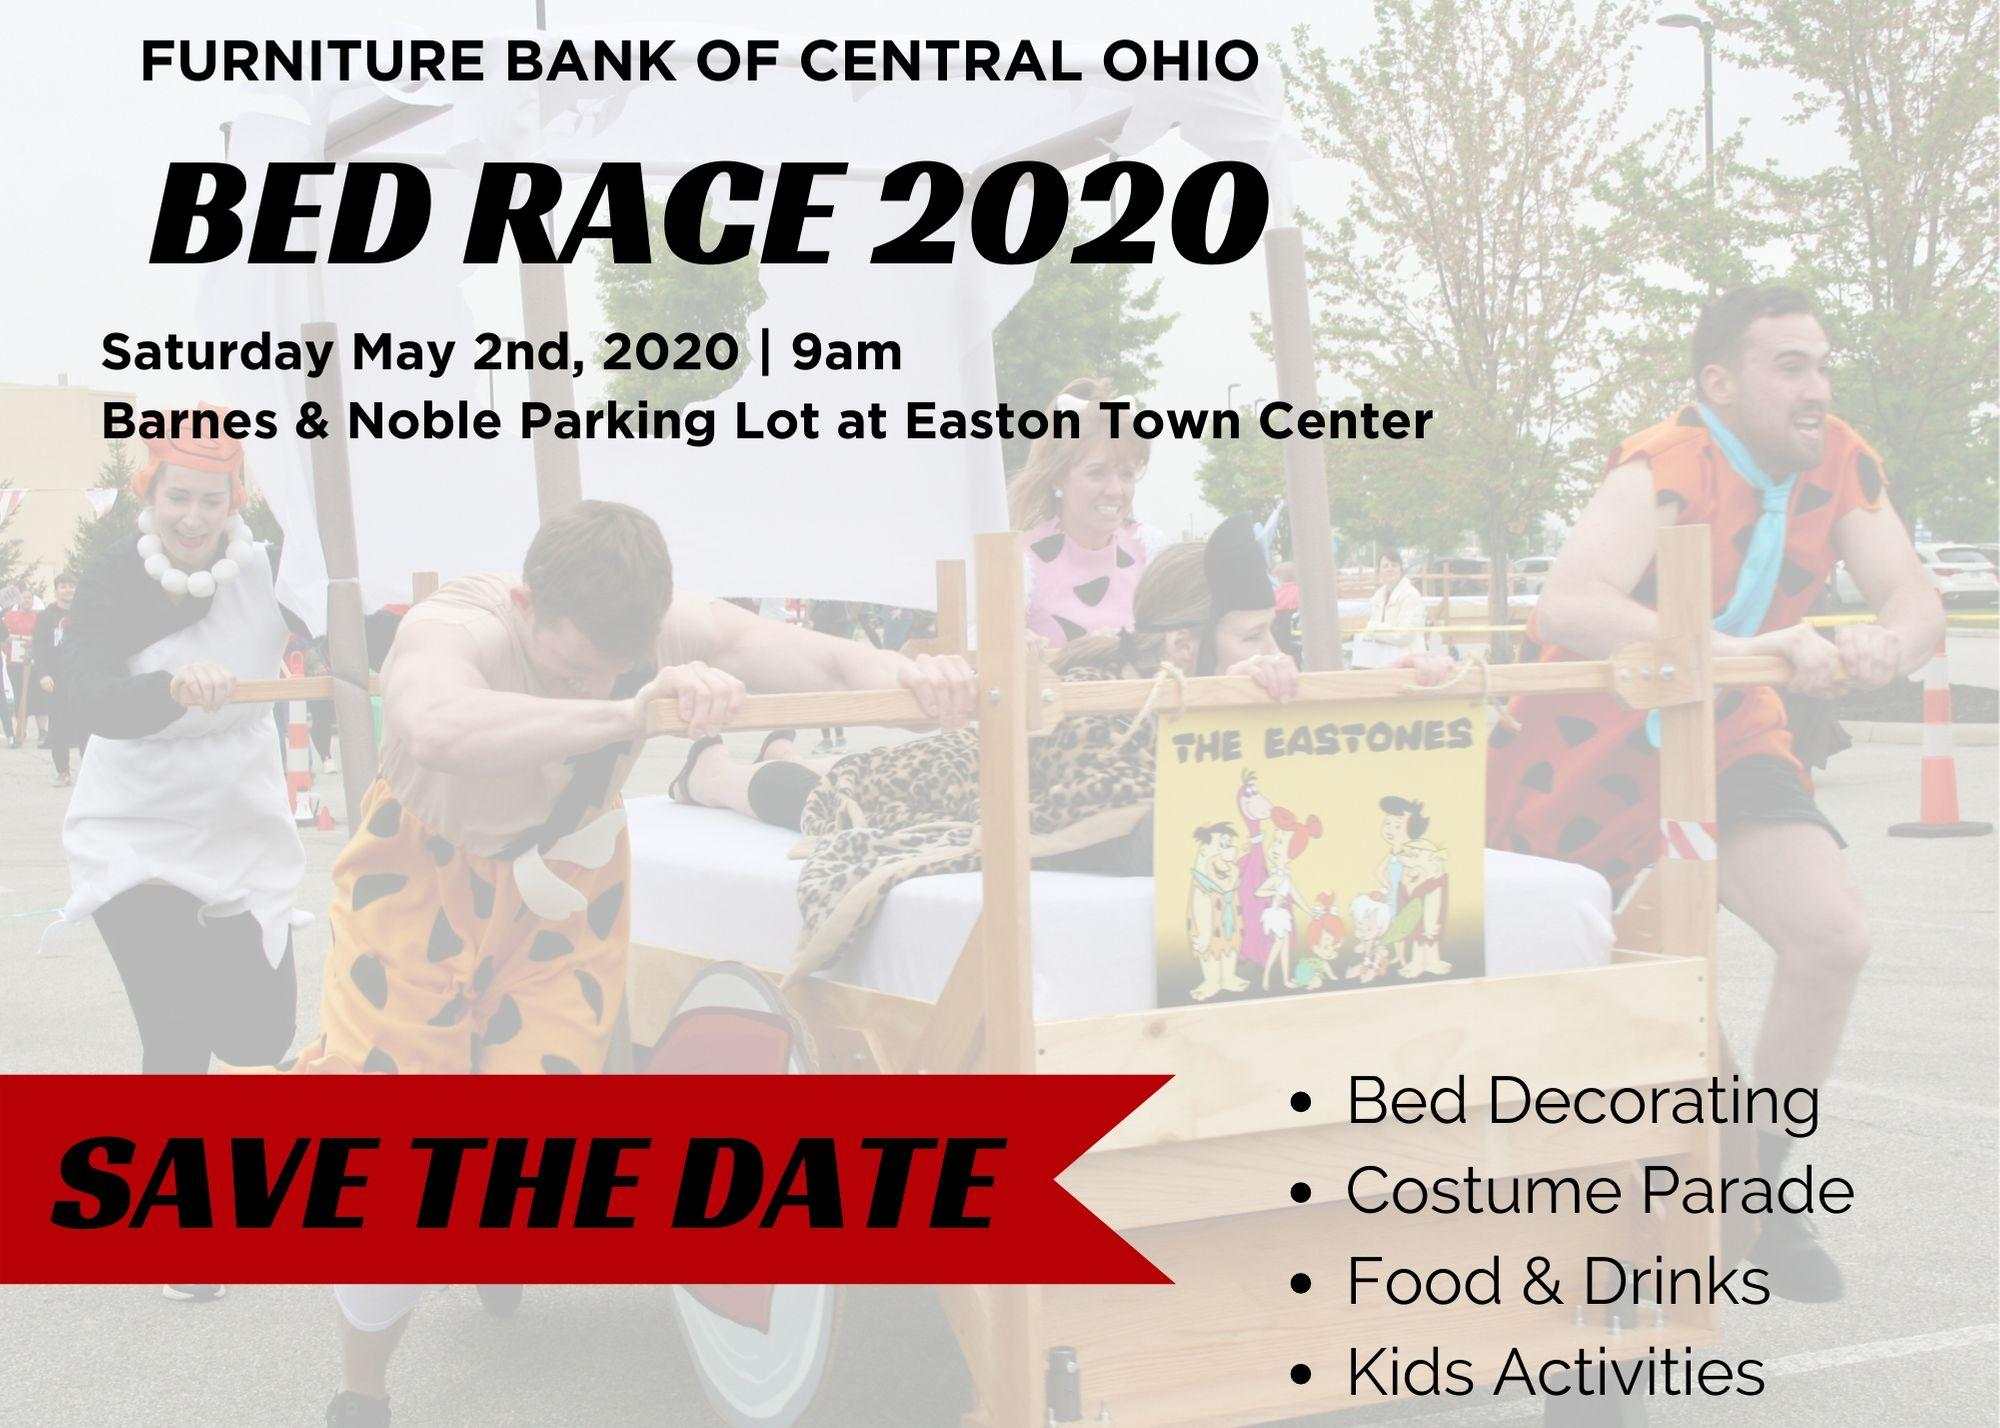 Save the Date for the 2020 Bed Race!